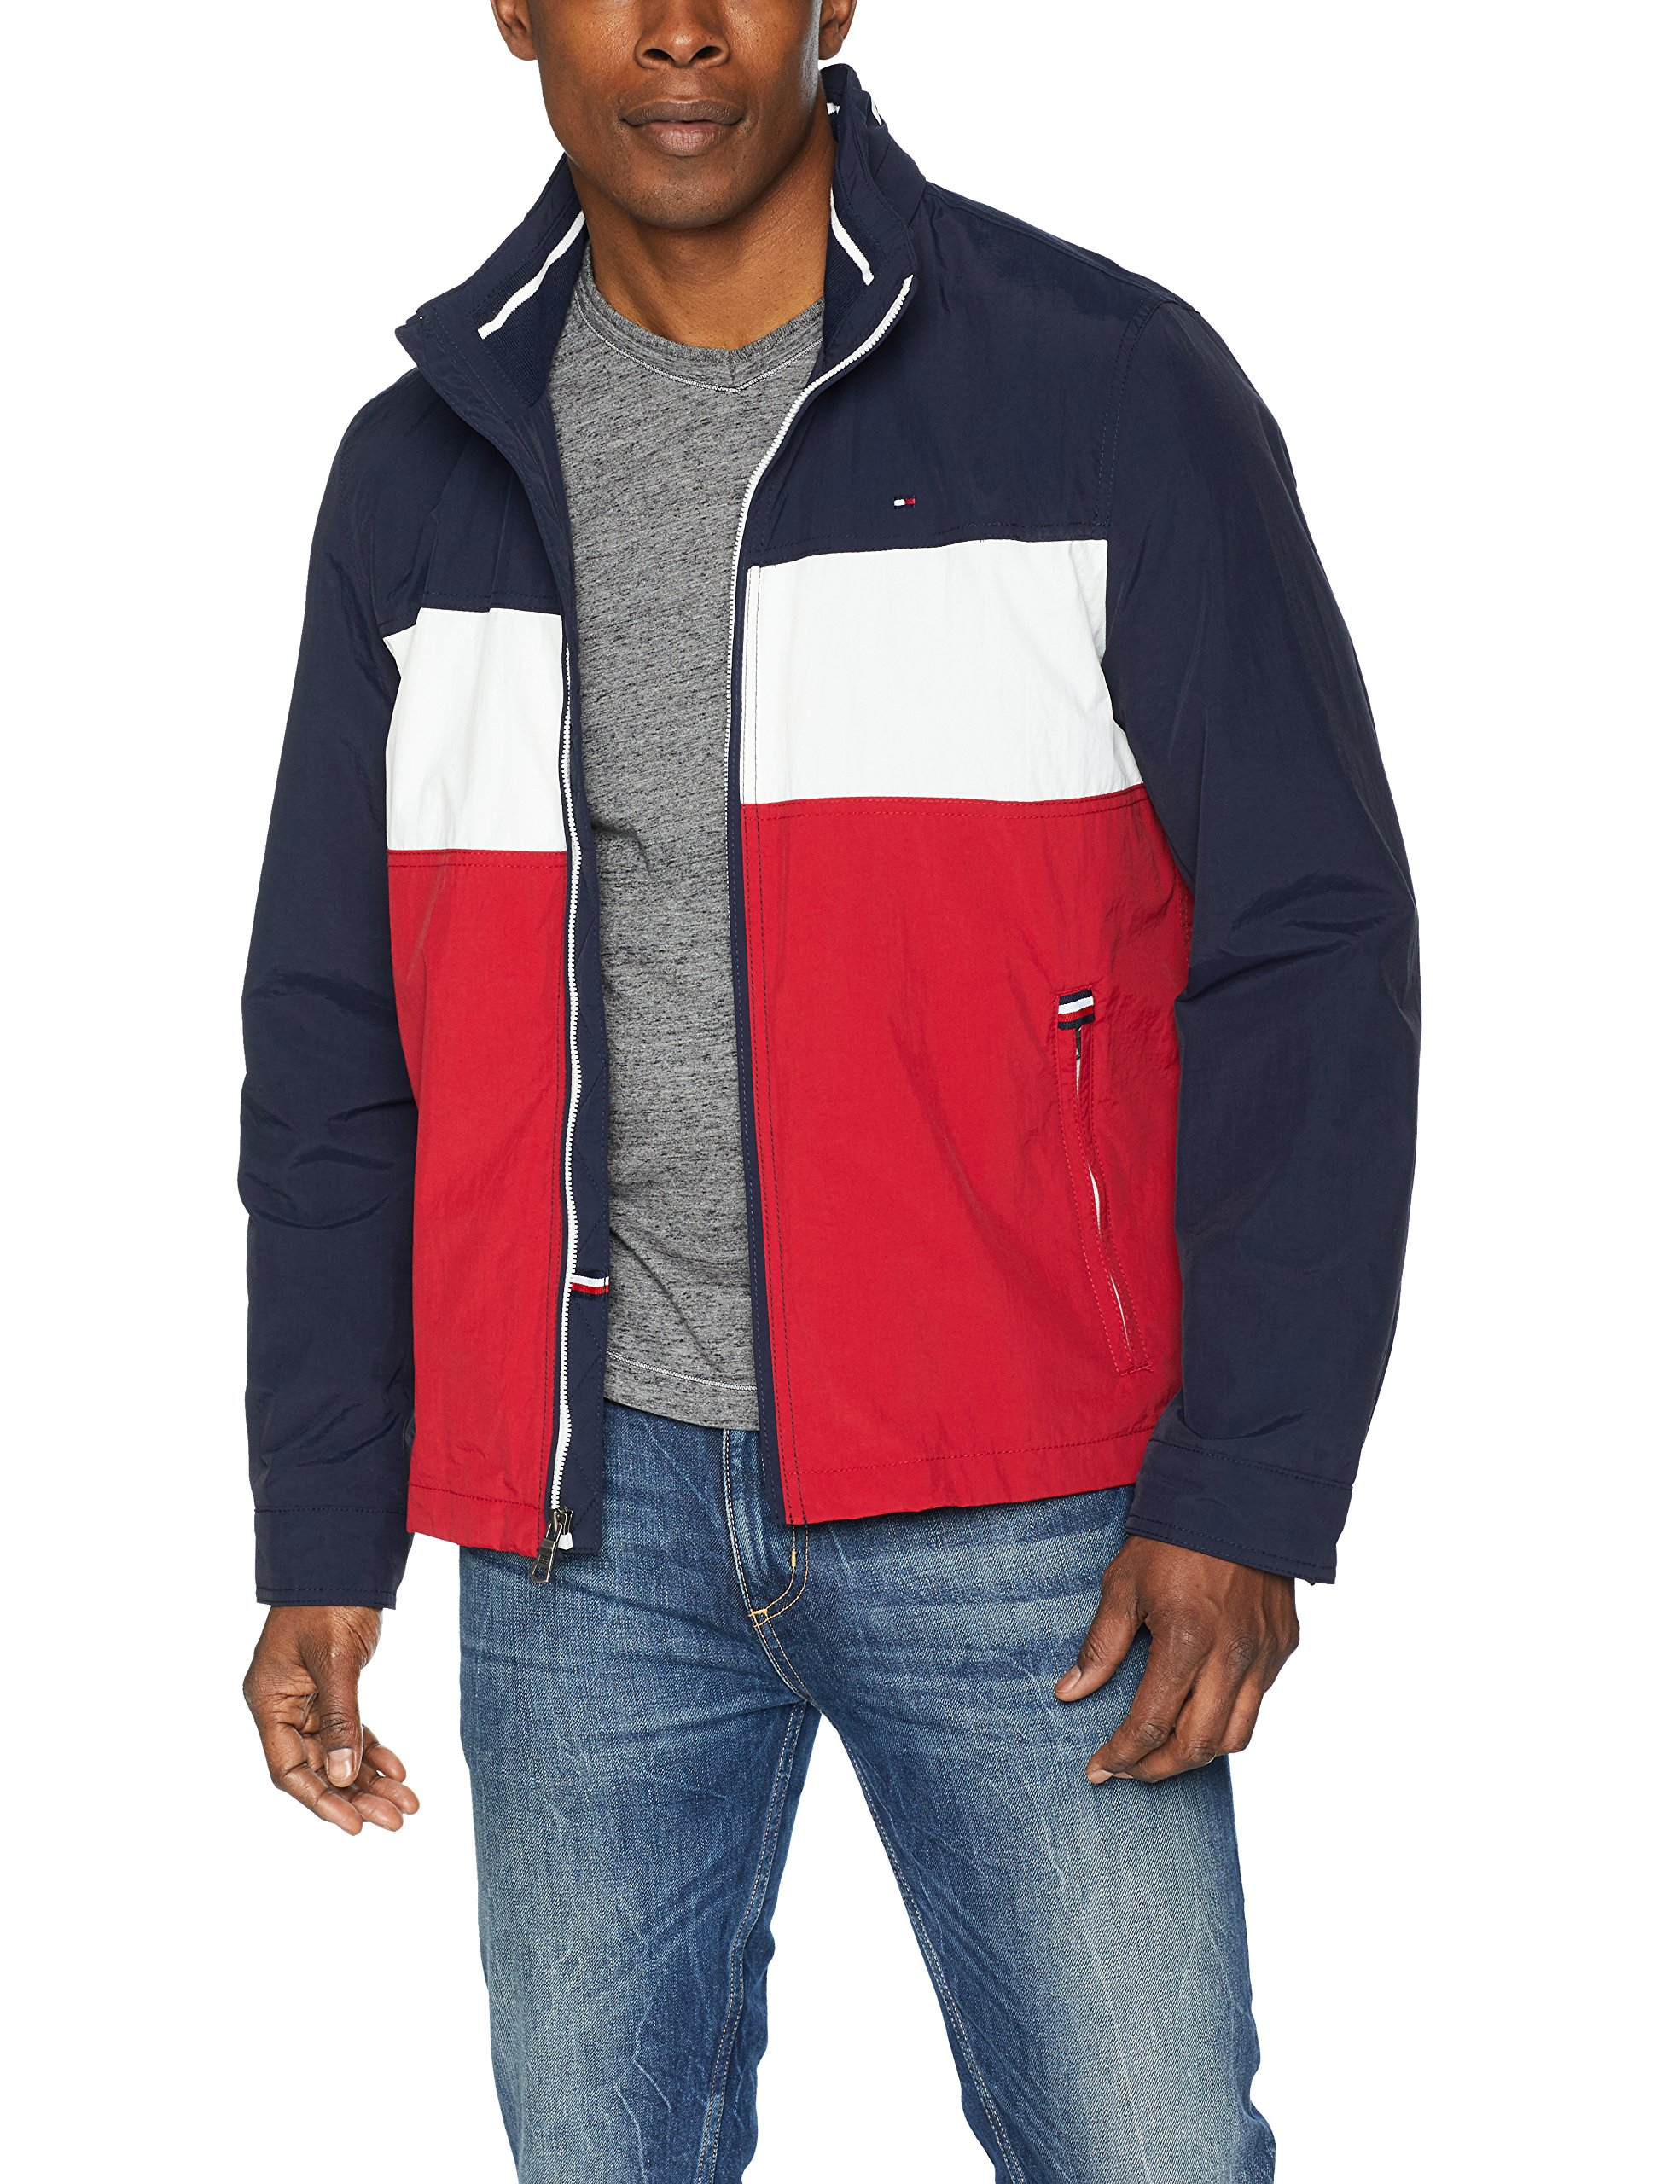 Tommy Hilfiger Men's Stand Collar Lightweight Yachting Jacket, Navy/Ice/Red, Medium by Tommy Hilfiger